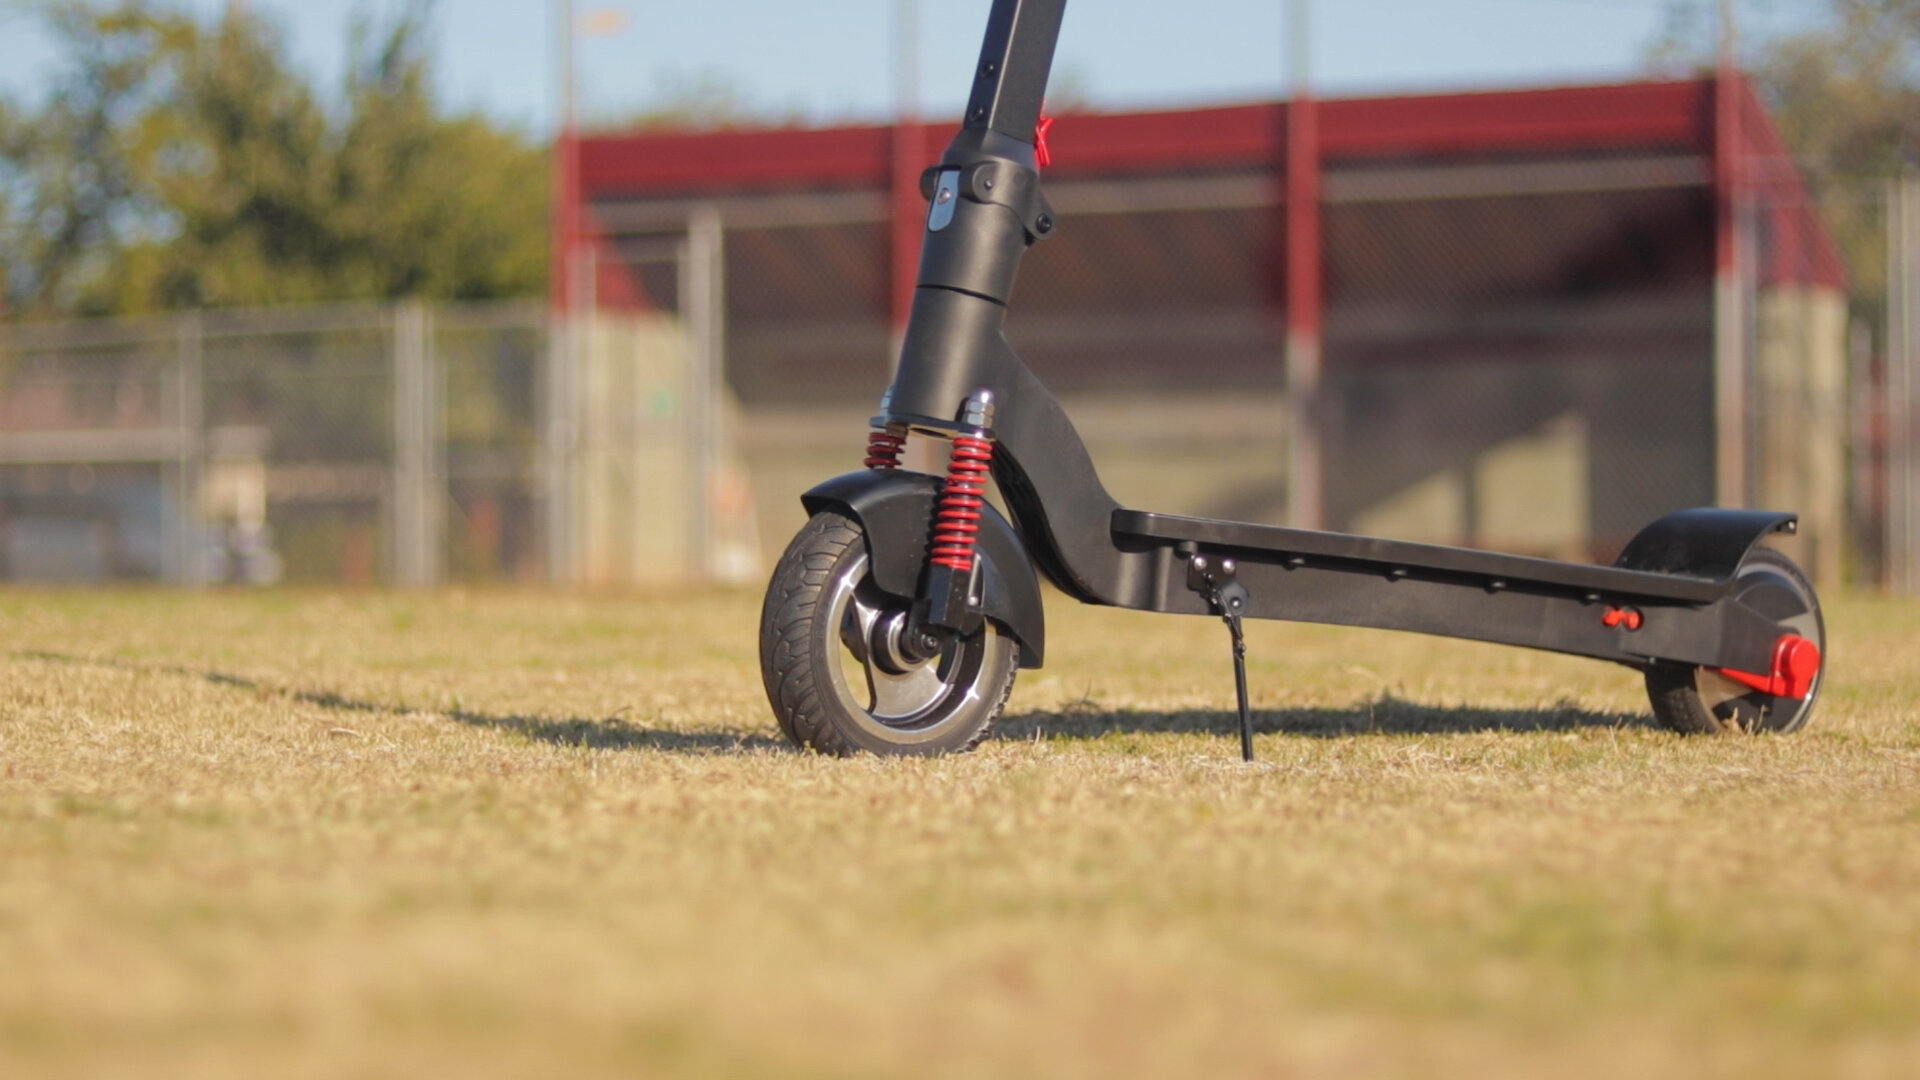 tianrun-r3s-electric-scooter-review-2019-shocks.jpg